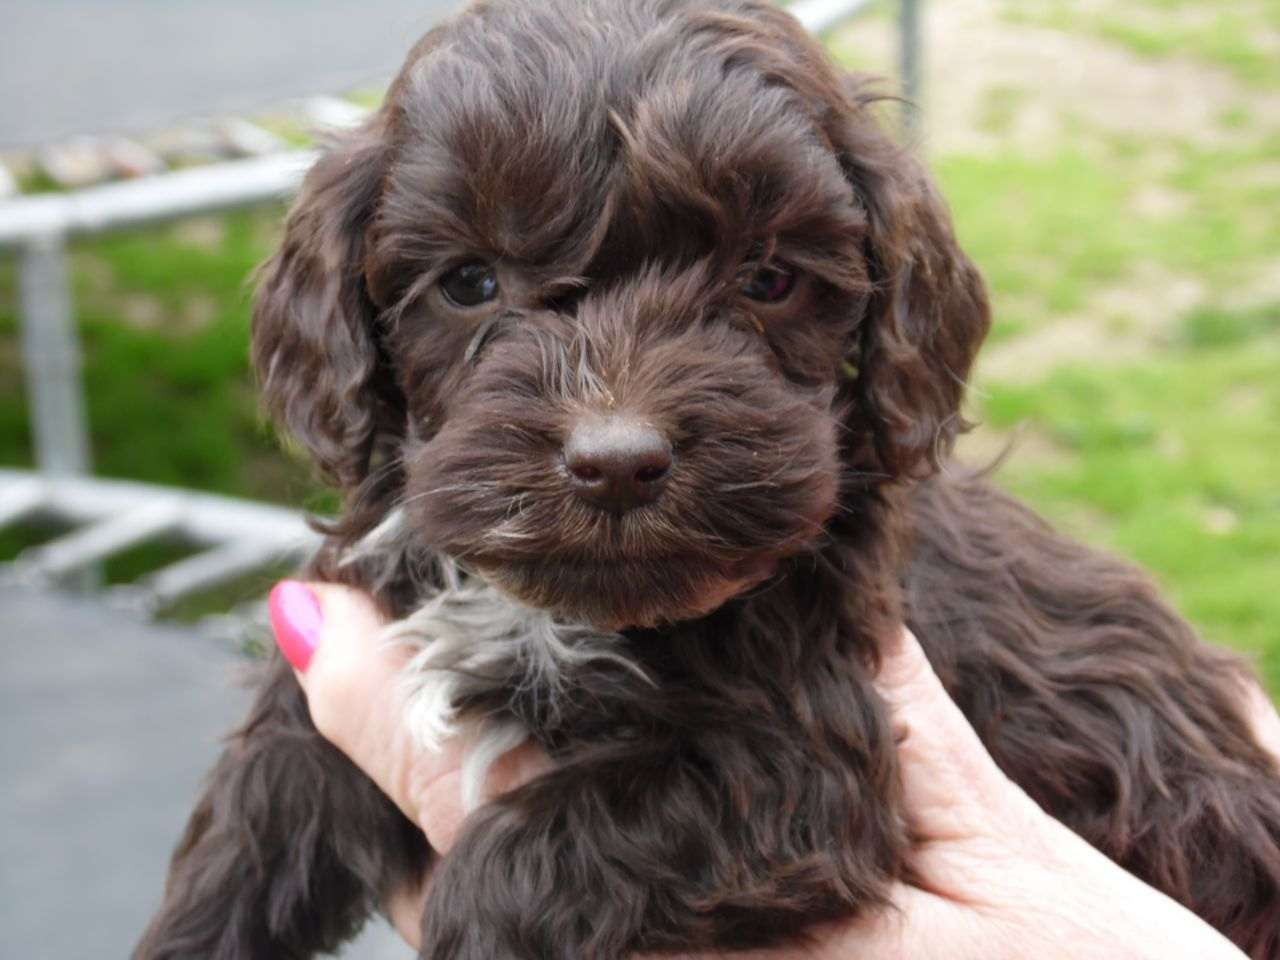 F1 Cockapoo Puppies Ashford Kent Pets4homes Cockapoo Puppies Cockapoo Puppies For Sale Puppies For Sale